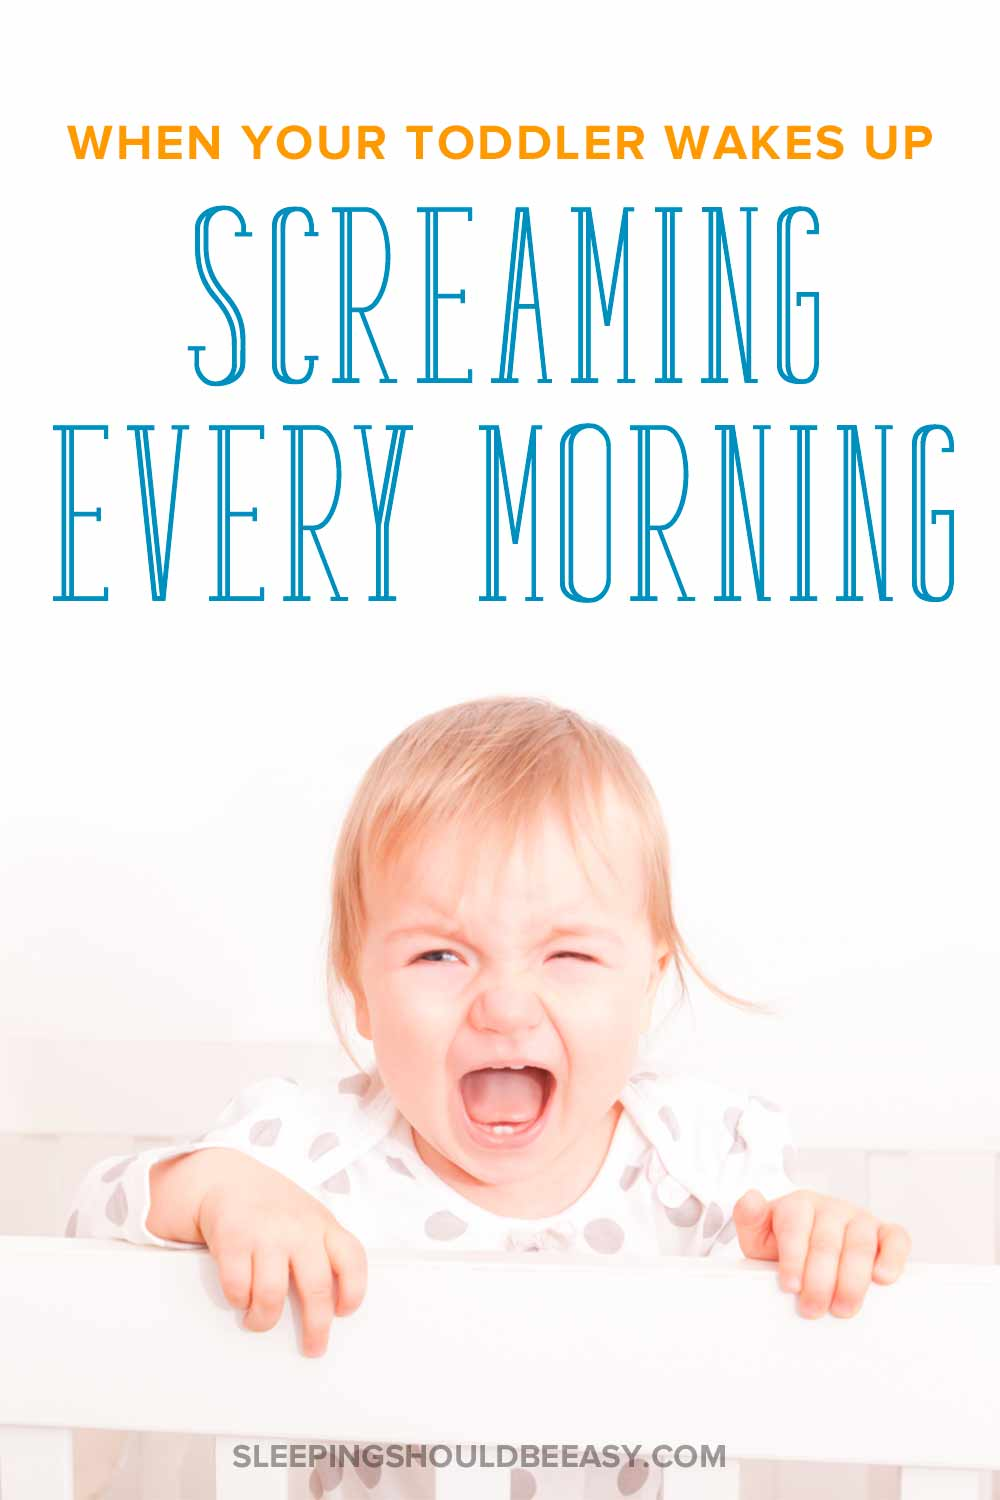 Toddler wakes up crying every morning